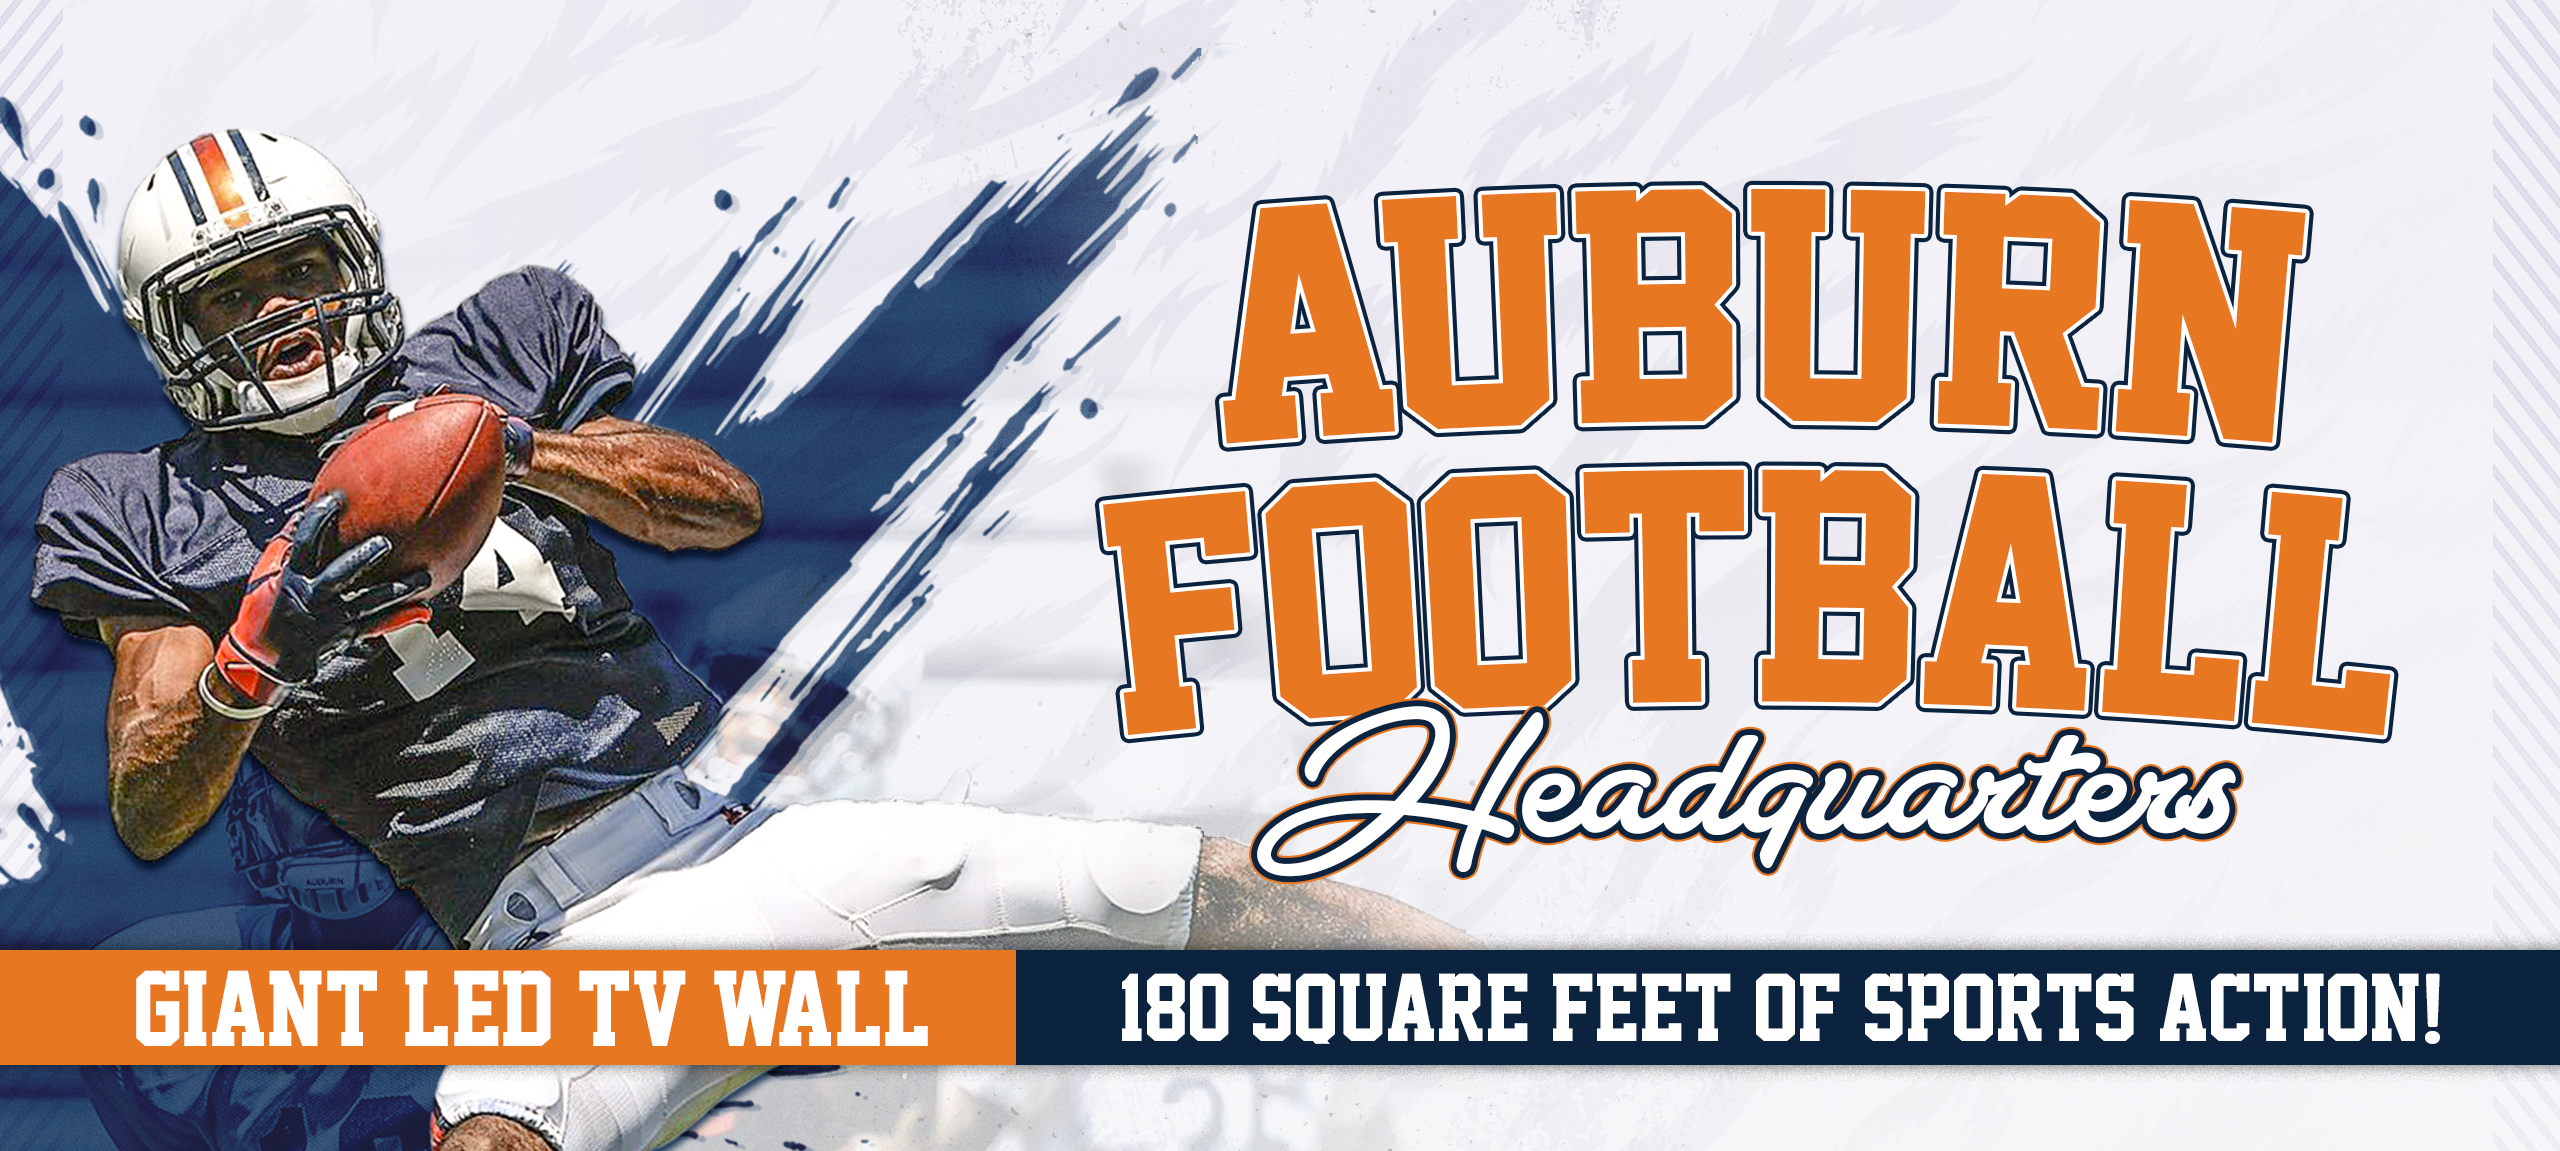 RnR-Auburn-Football-Web-Slider-2560x1151